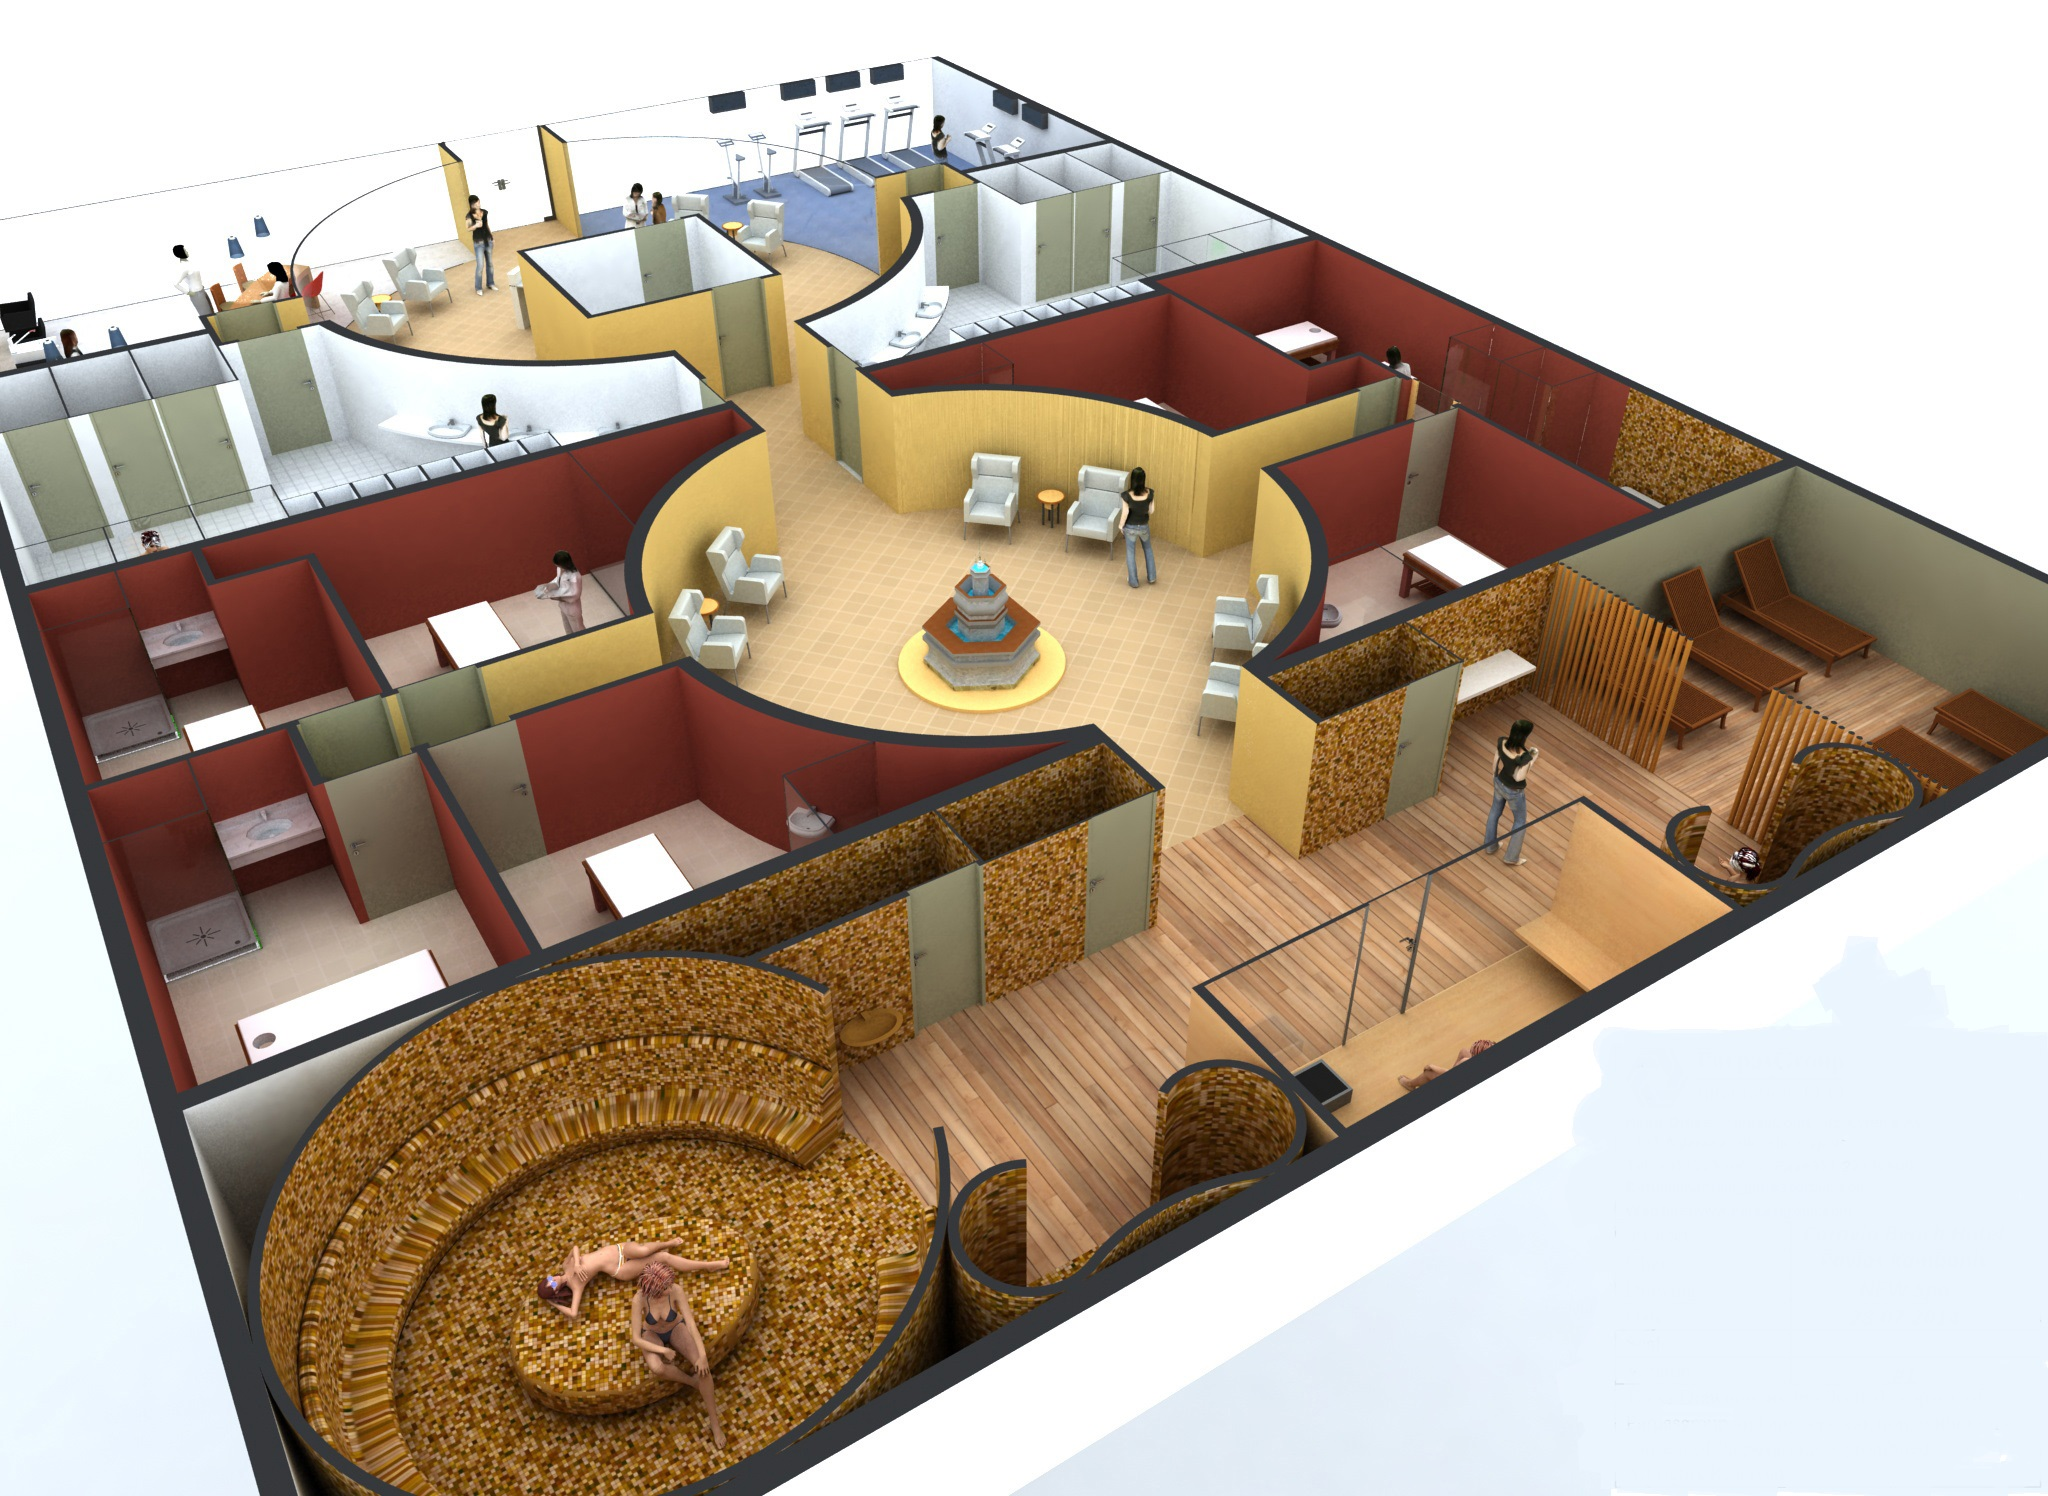 Spa drawings spatrade international spa consulting design spa management franchise - Salon equipment international ...